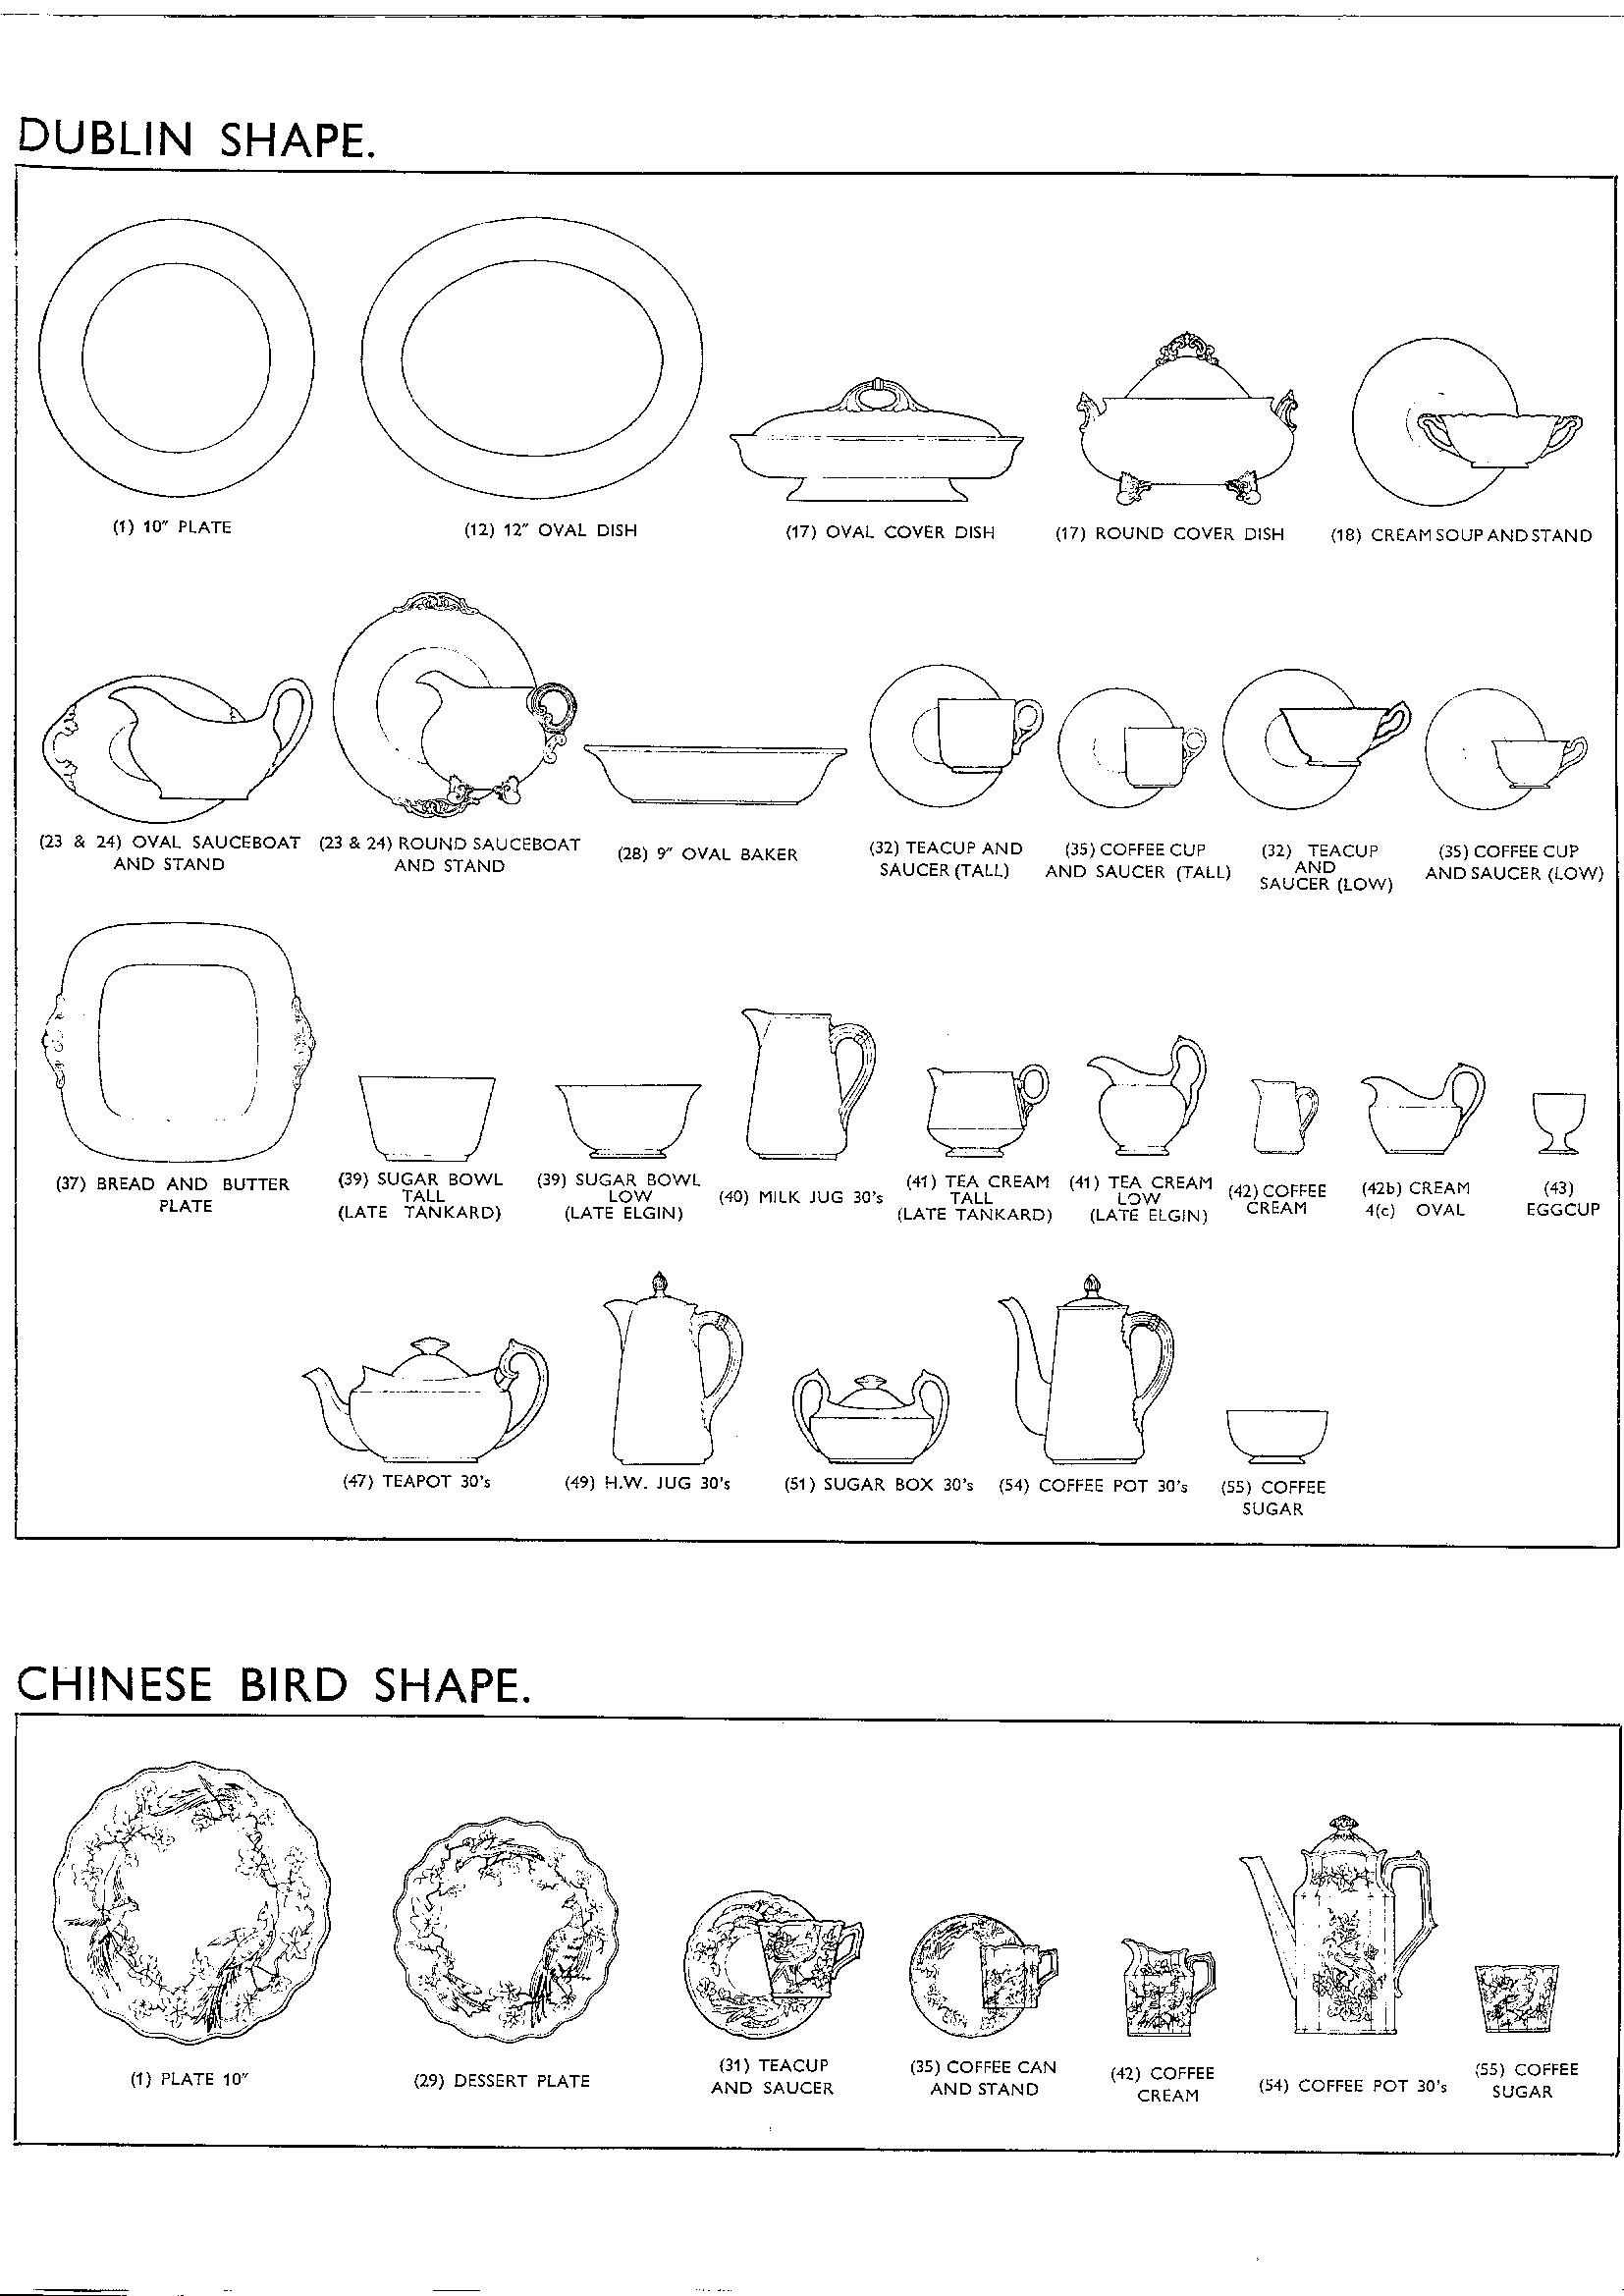 royal-crown-derby-outline-sketches-of-shapes-1955-page-3